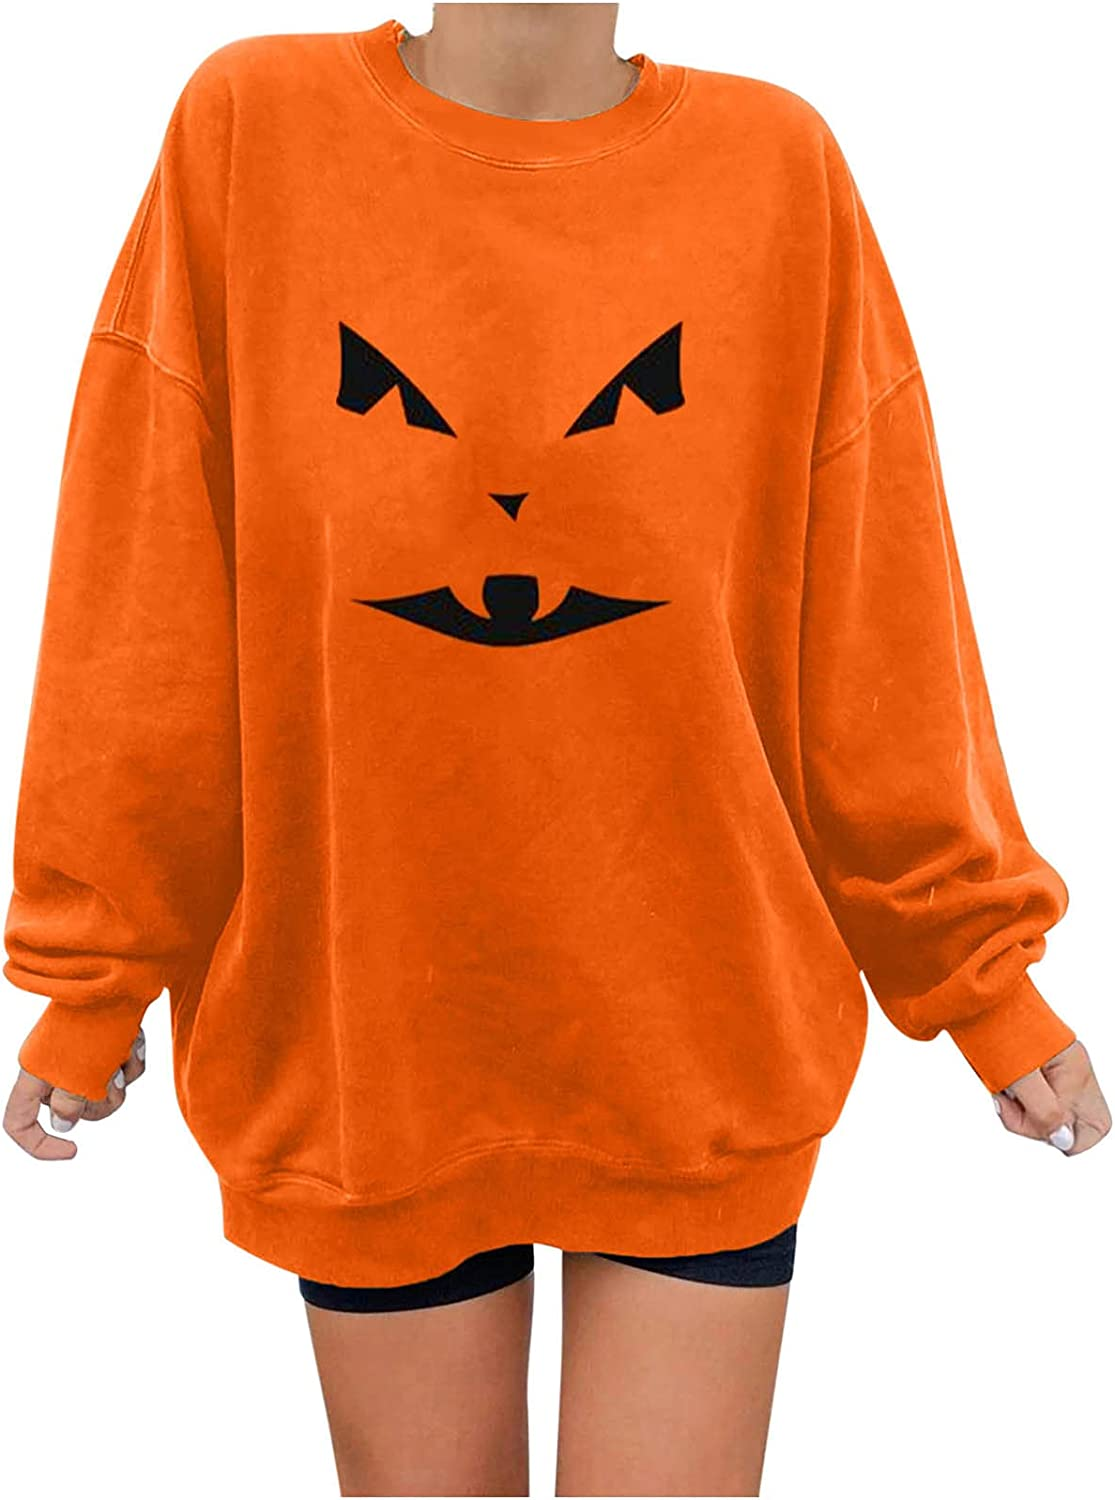 Fashion Pullover for Women's Blouse Tops Casual Wool Liner Long Sleeve Halloween Printed Tee Shirt Sweatshirts